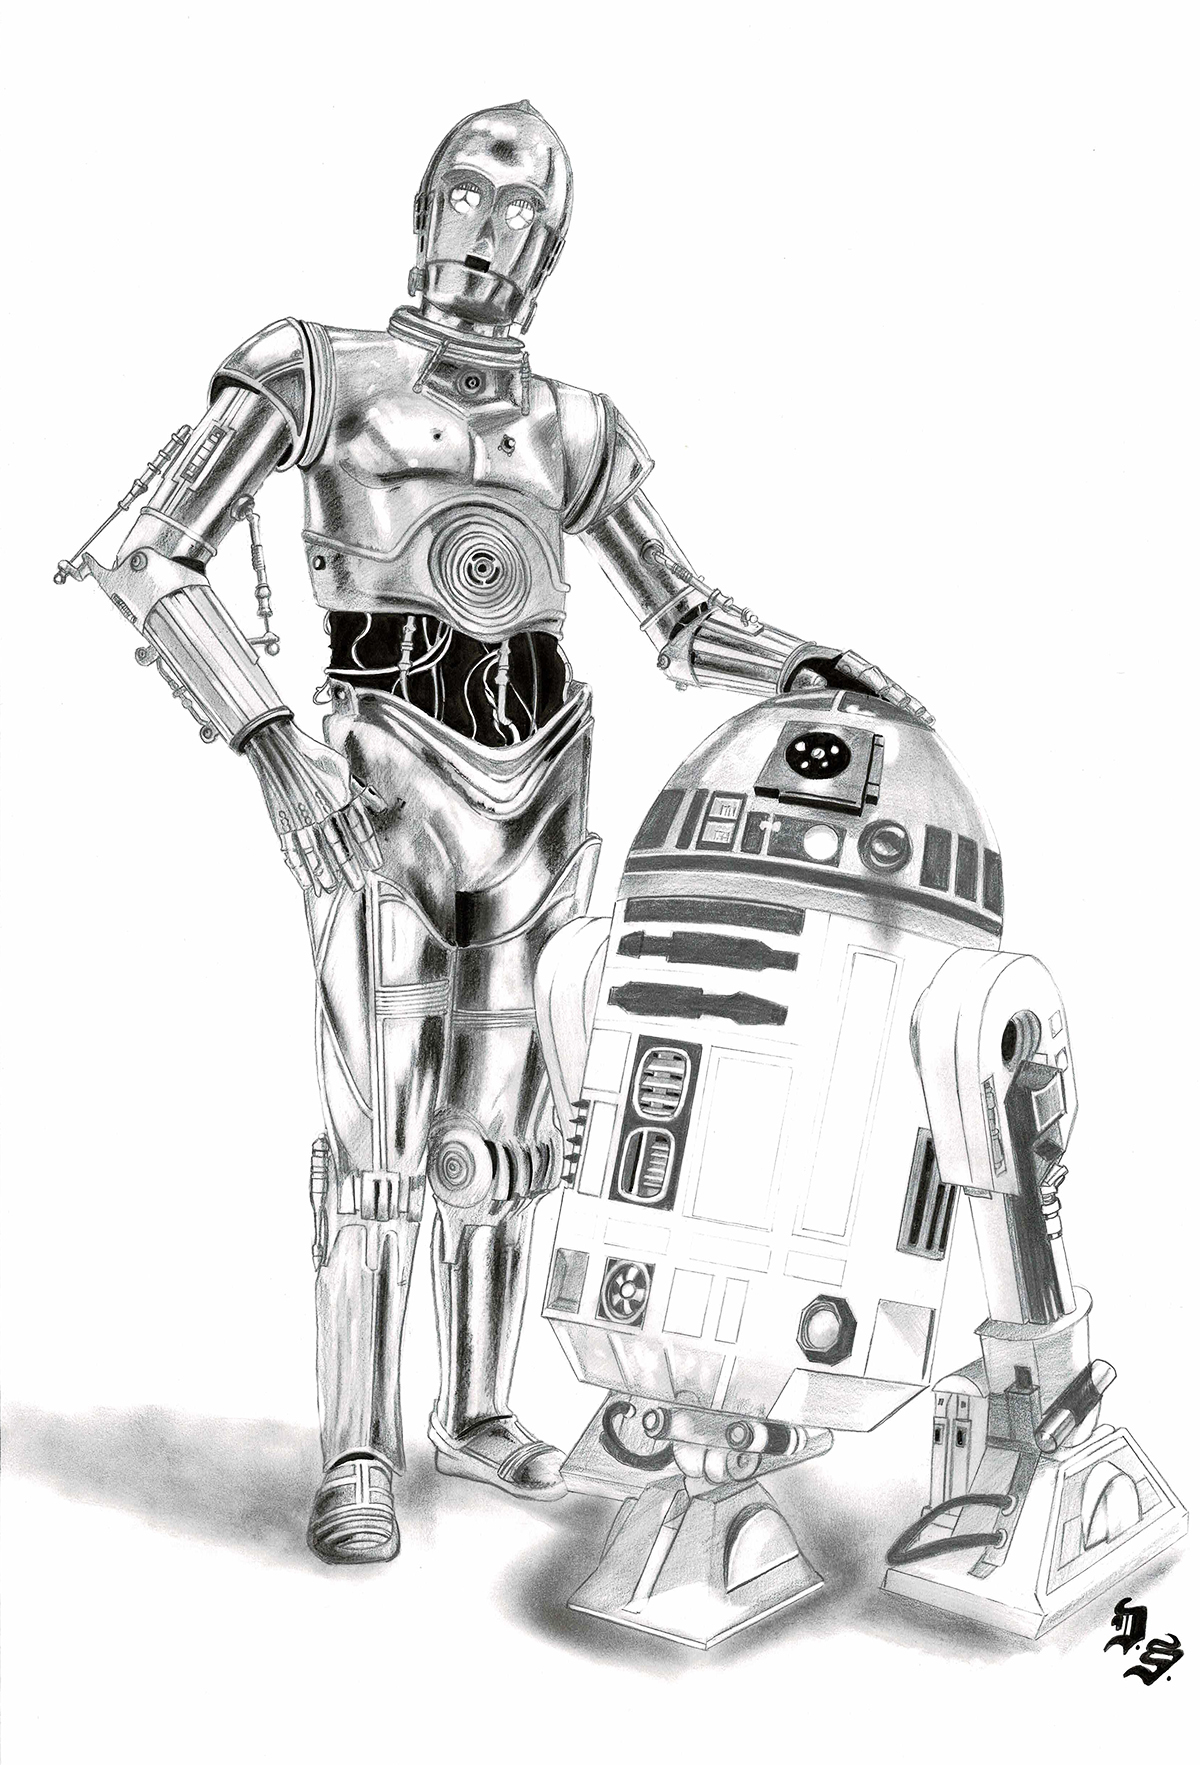 R2-D2 and C-3PO – Star Wars – corner4artR2d2 And C3po Drawing